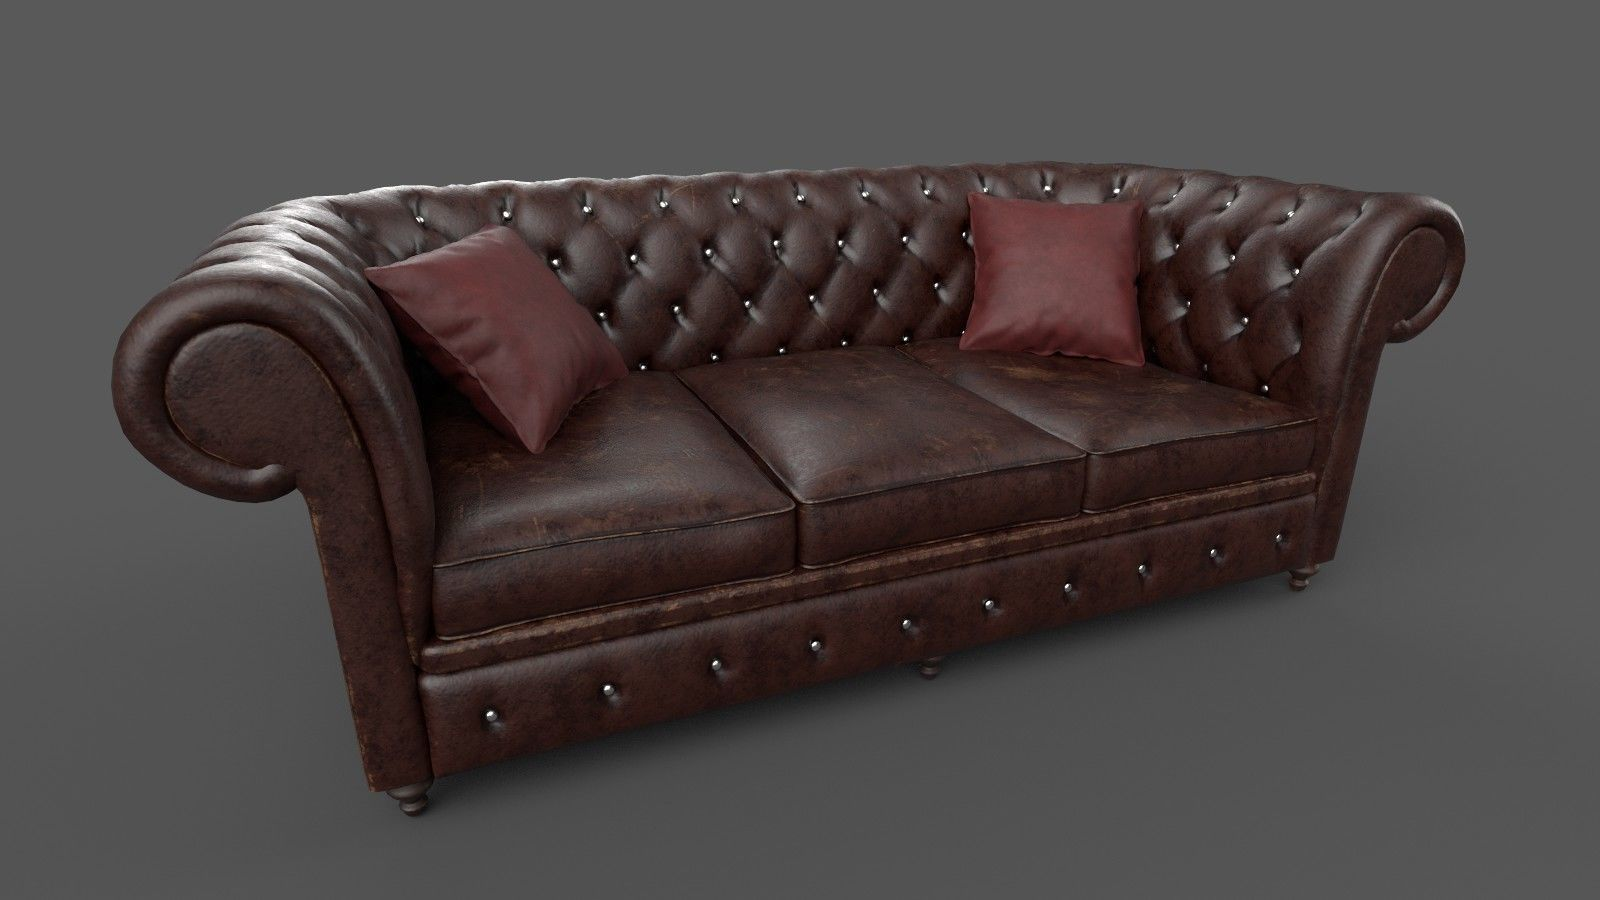 Chesterfield Sofa - 6 versions